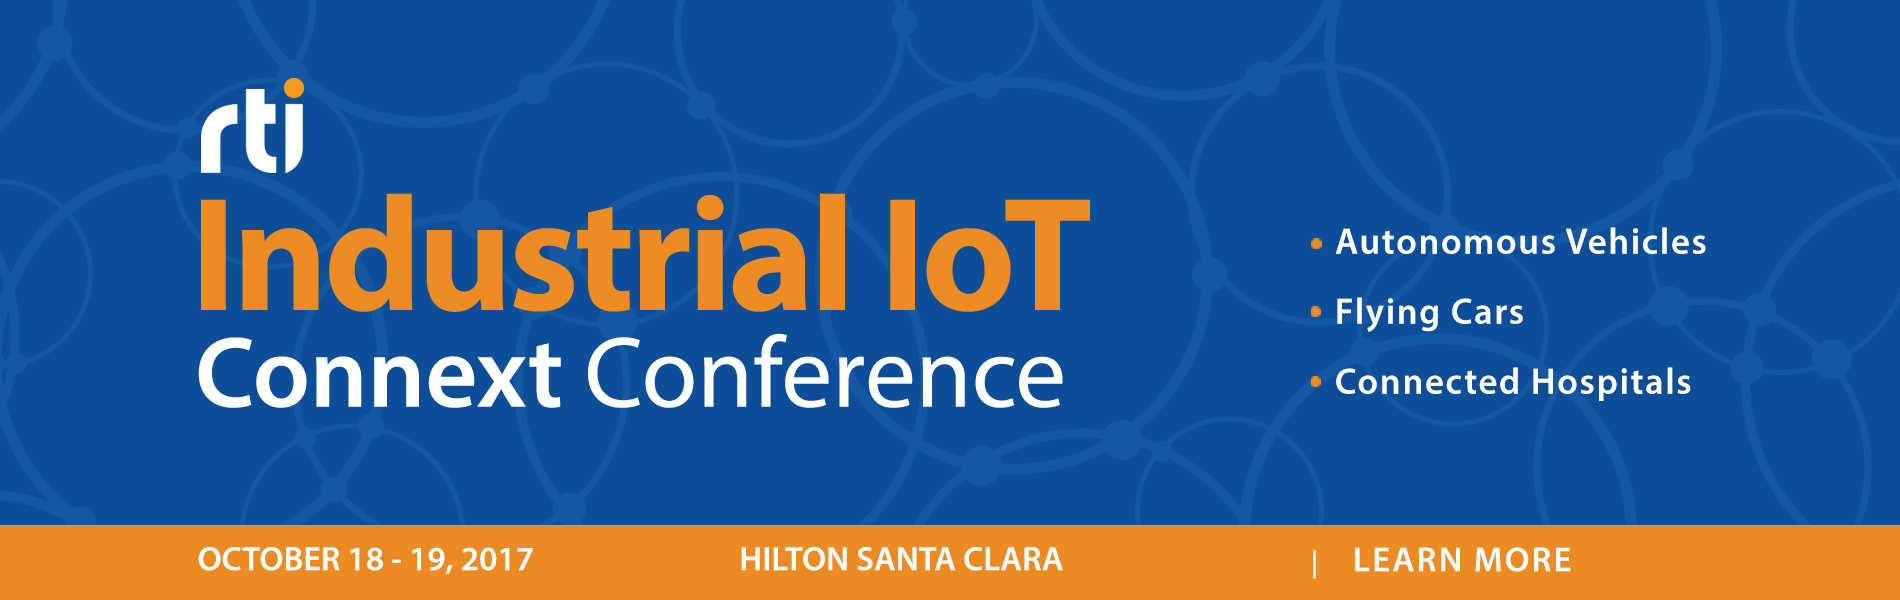 IIot Connext Conference